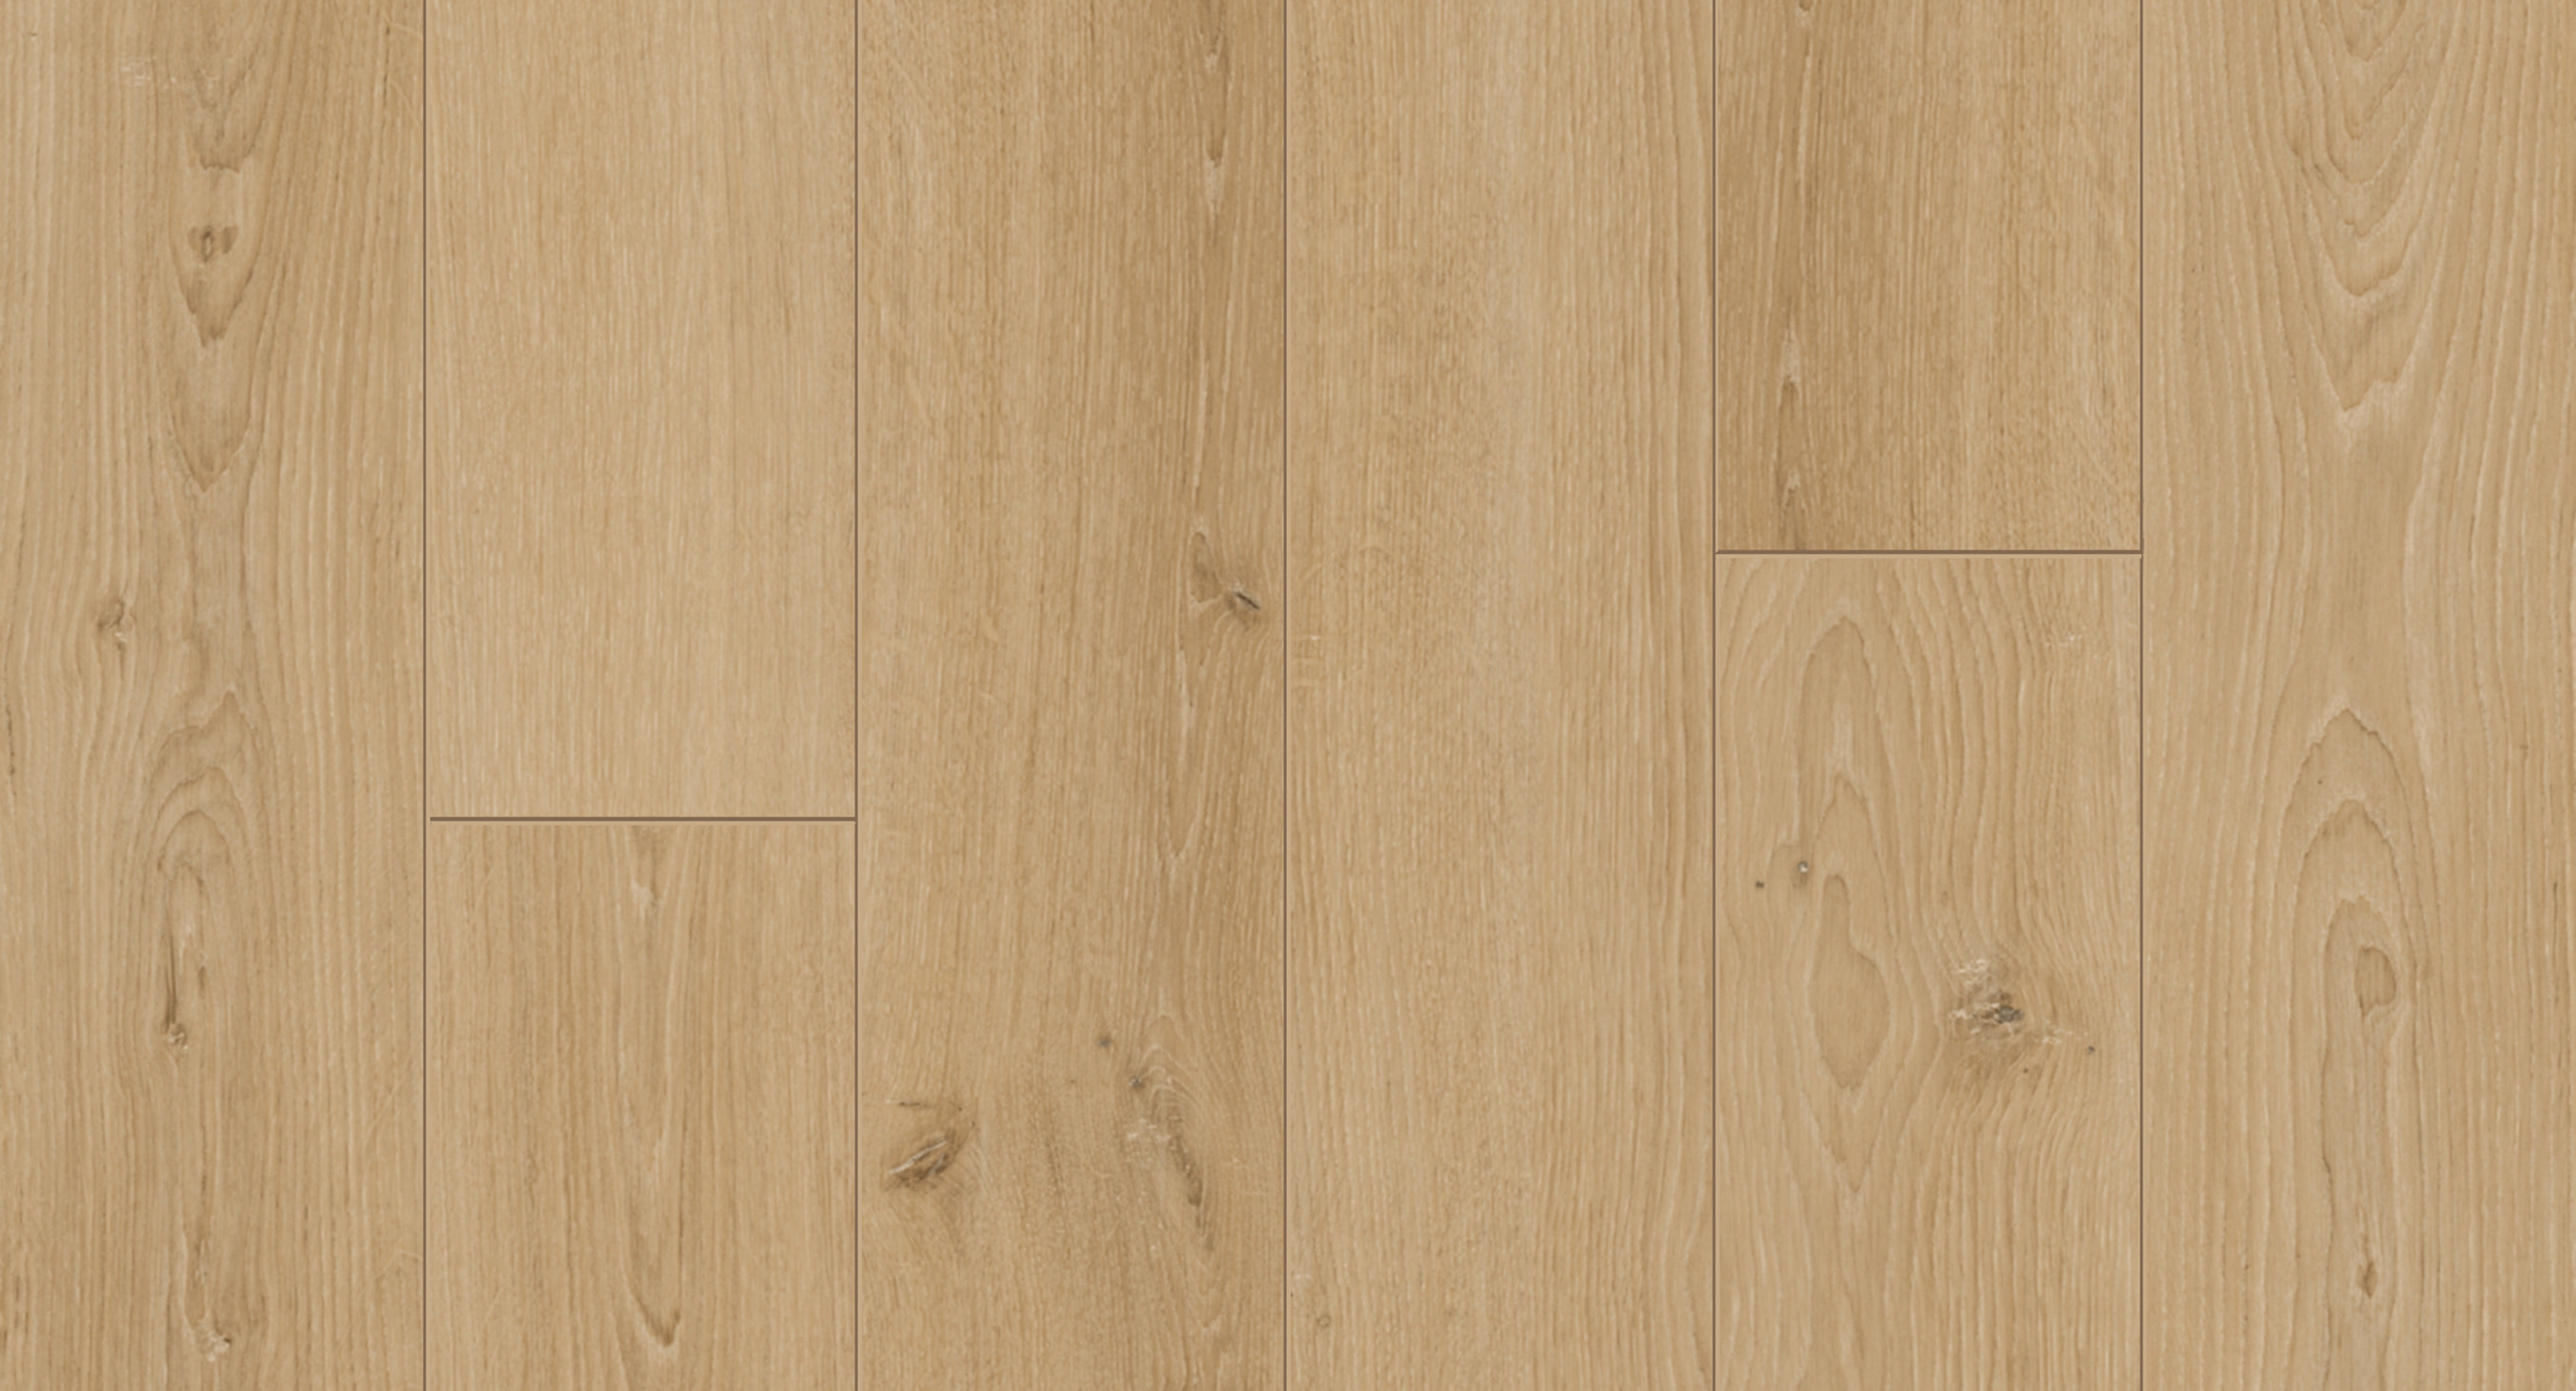 Weight Of Hardwood Flooring Of Classic Laminate Flooring Products Parador Throughout 45a